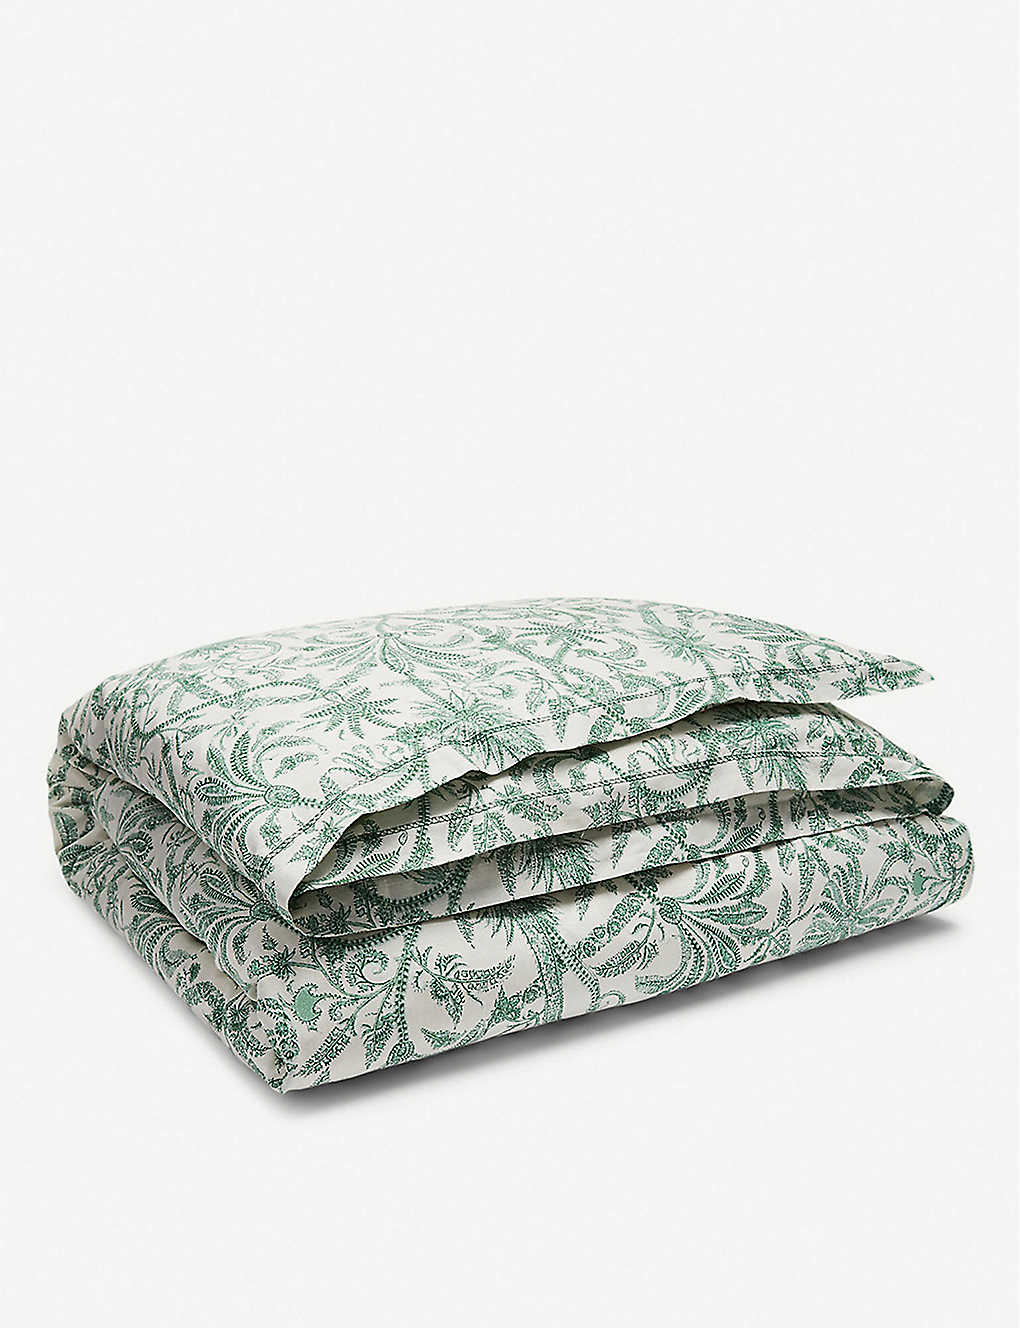 RALPH LAUREN HOME: Charleston cotton duvet cover